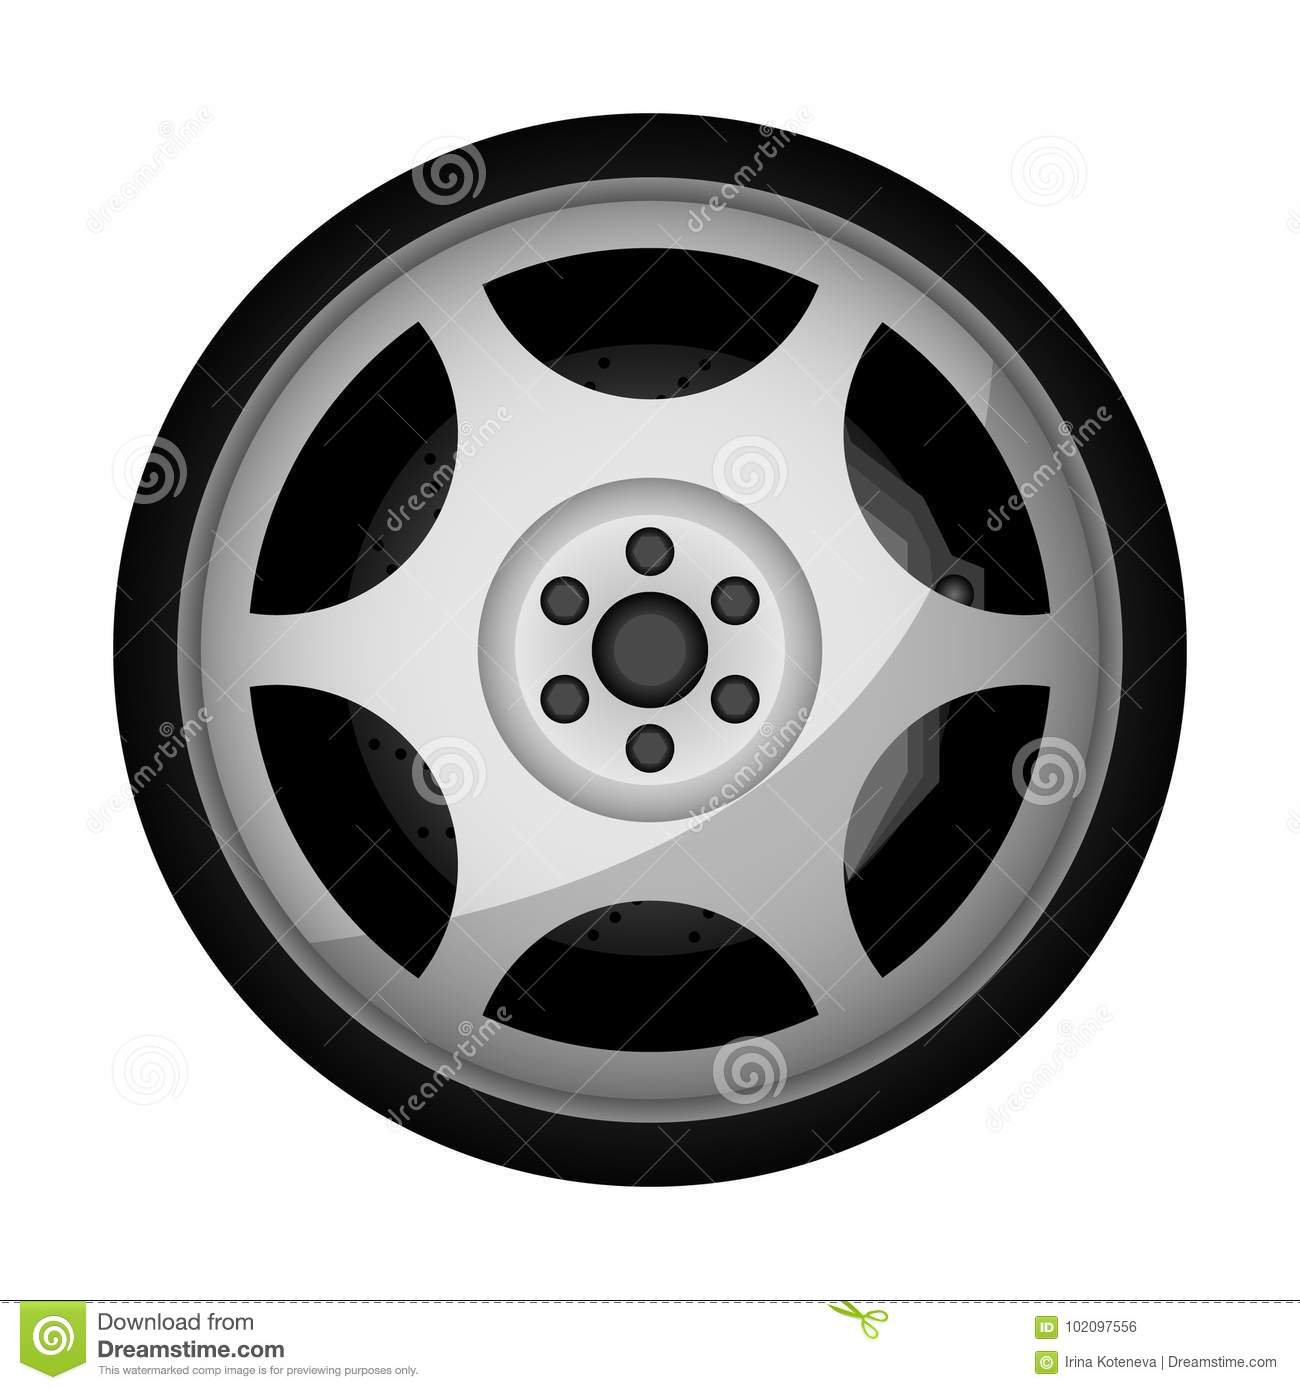 1ebede44114e16 Side view sports racing car wheel icon. Consumables for car, auto service  concept, wheel vehicle isolated on white background vector illustration.